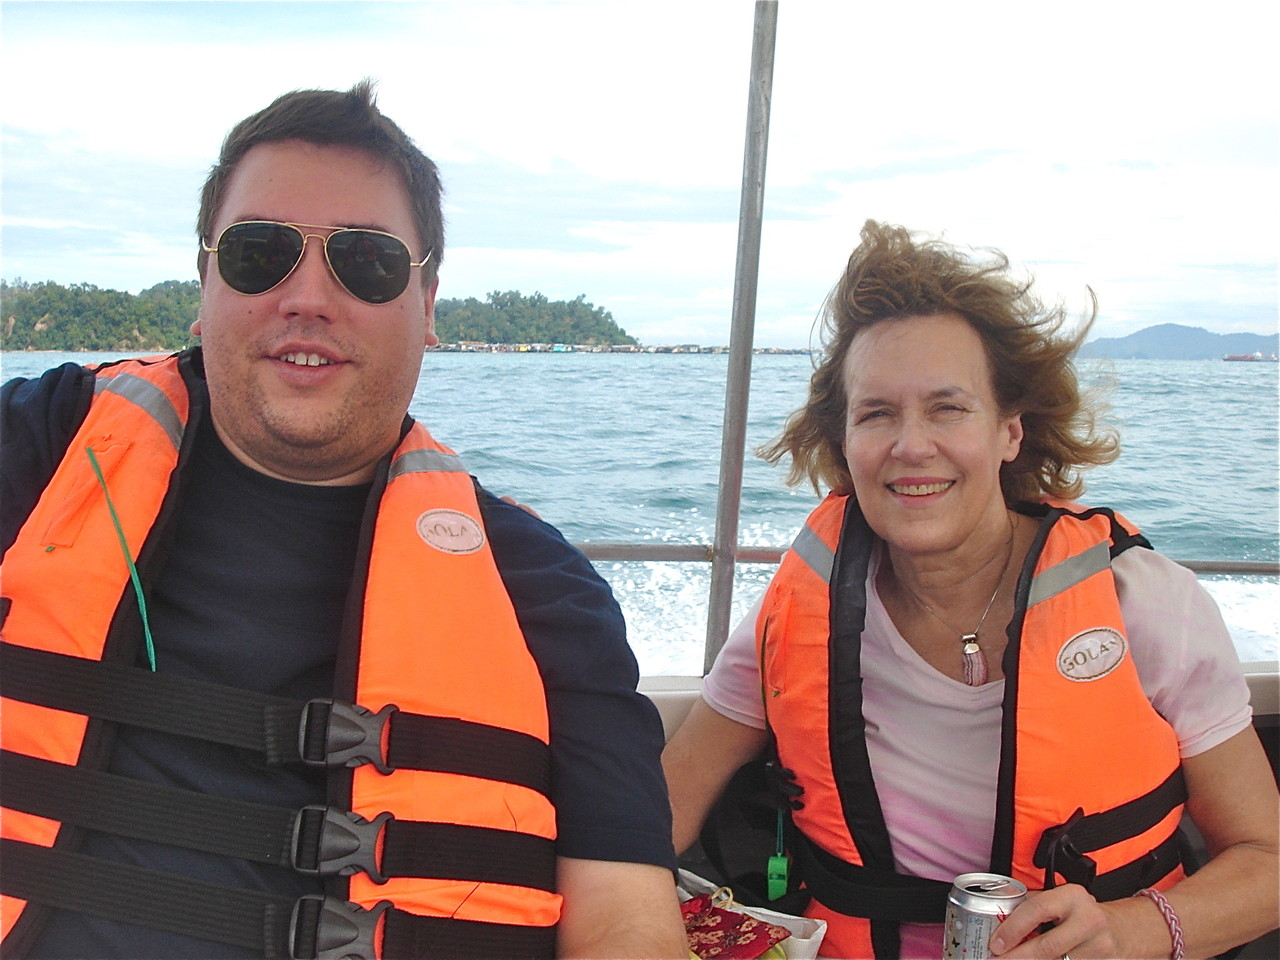 Greg & Lorraine on boat to snorkel at Mamutik island, one of the 3 islands in the Tunku Abdul Rahman Park.